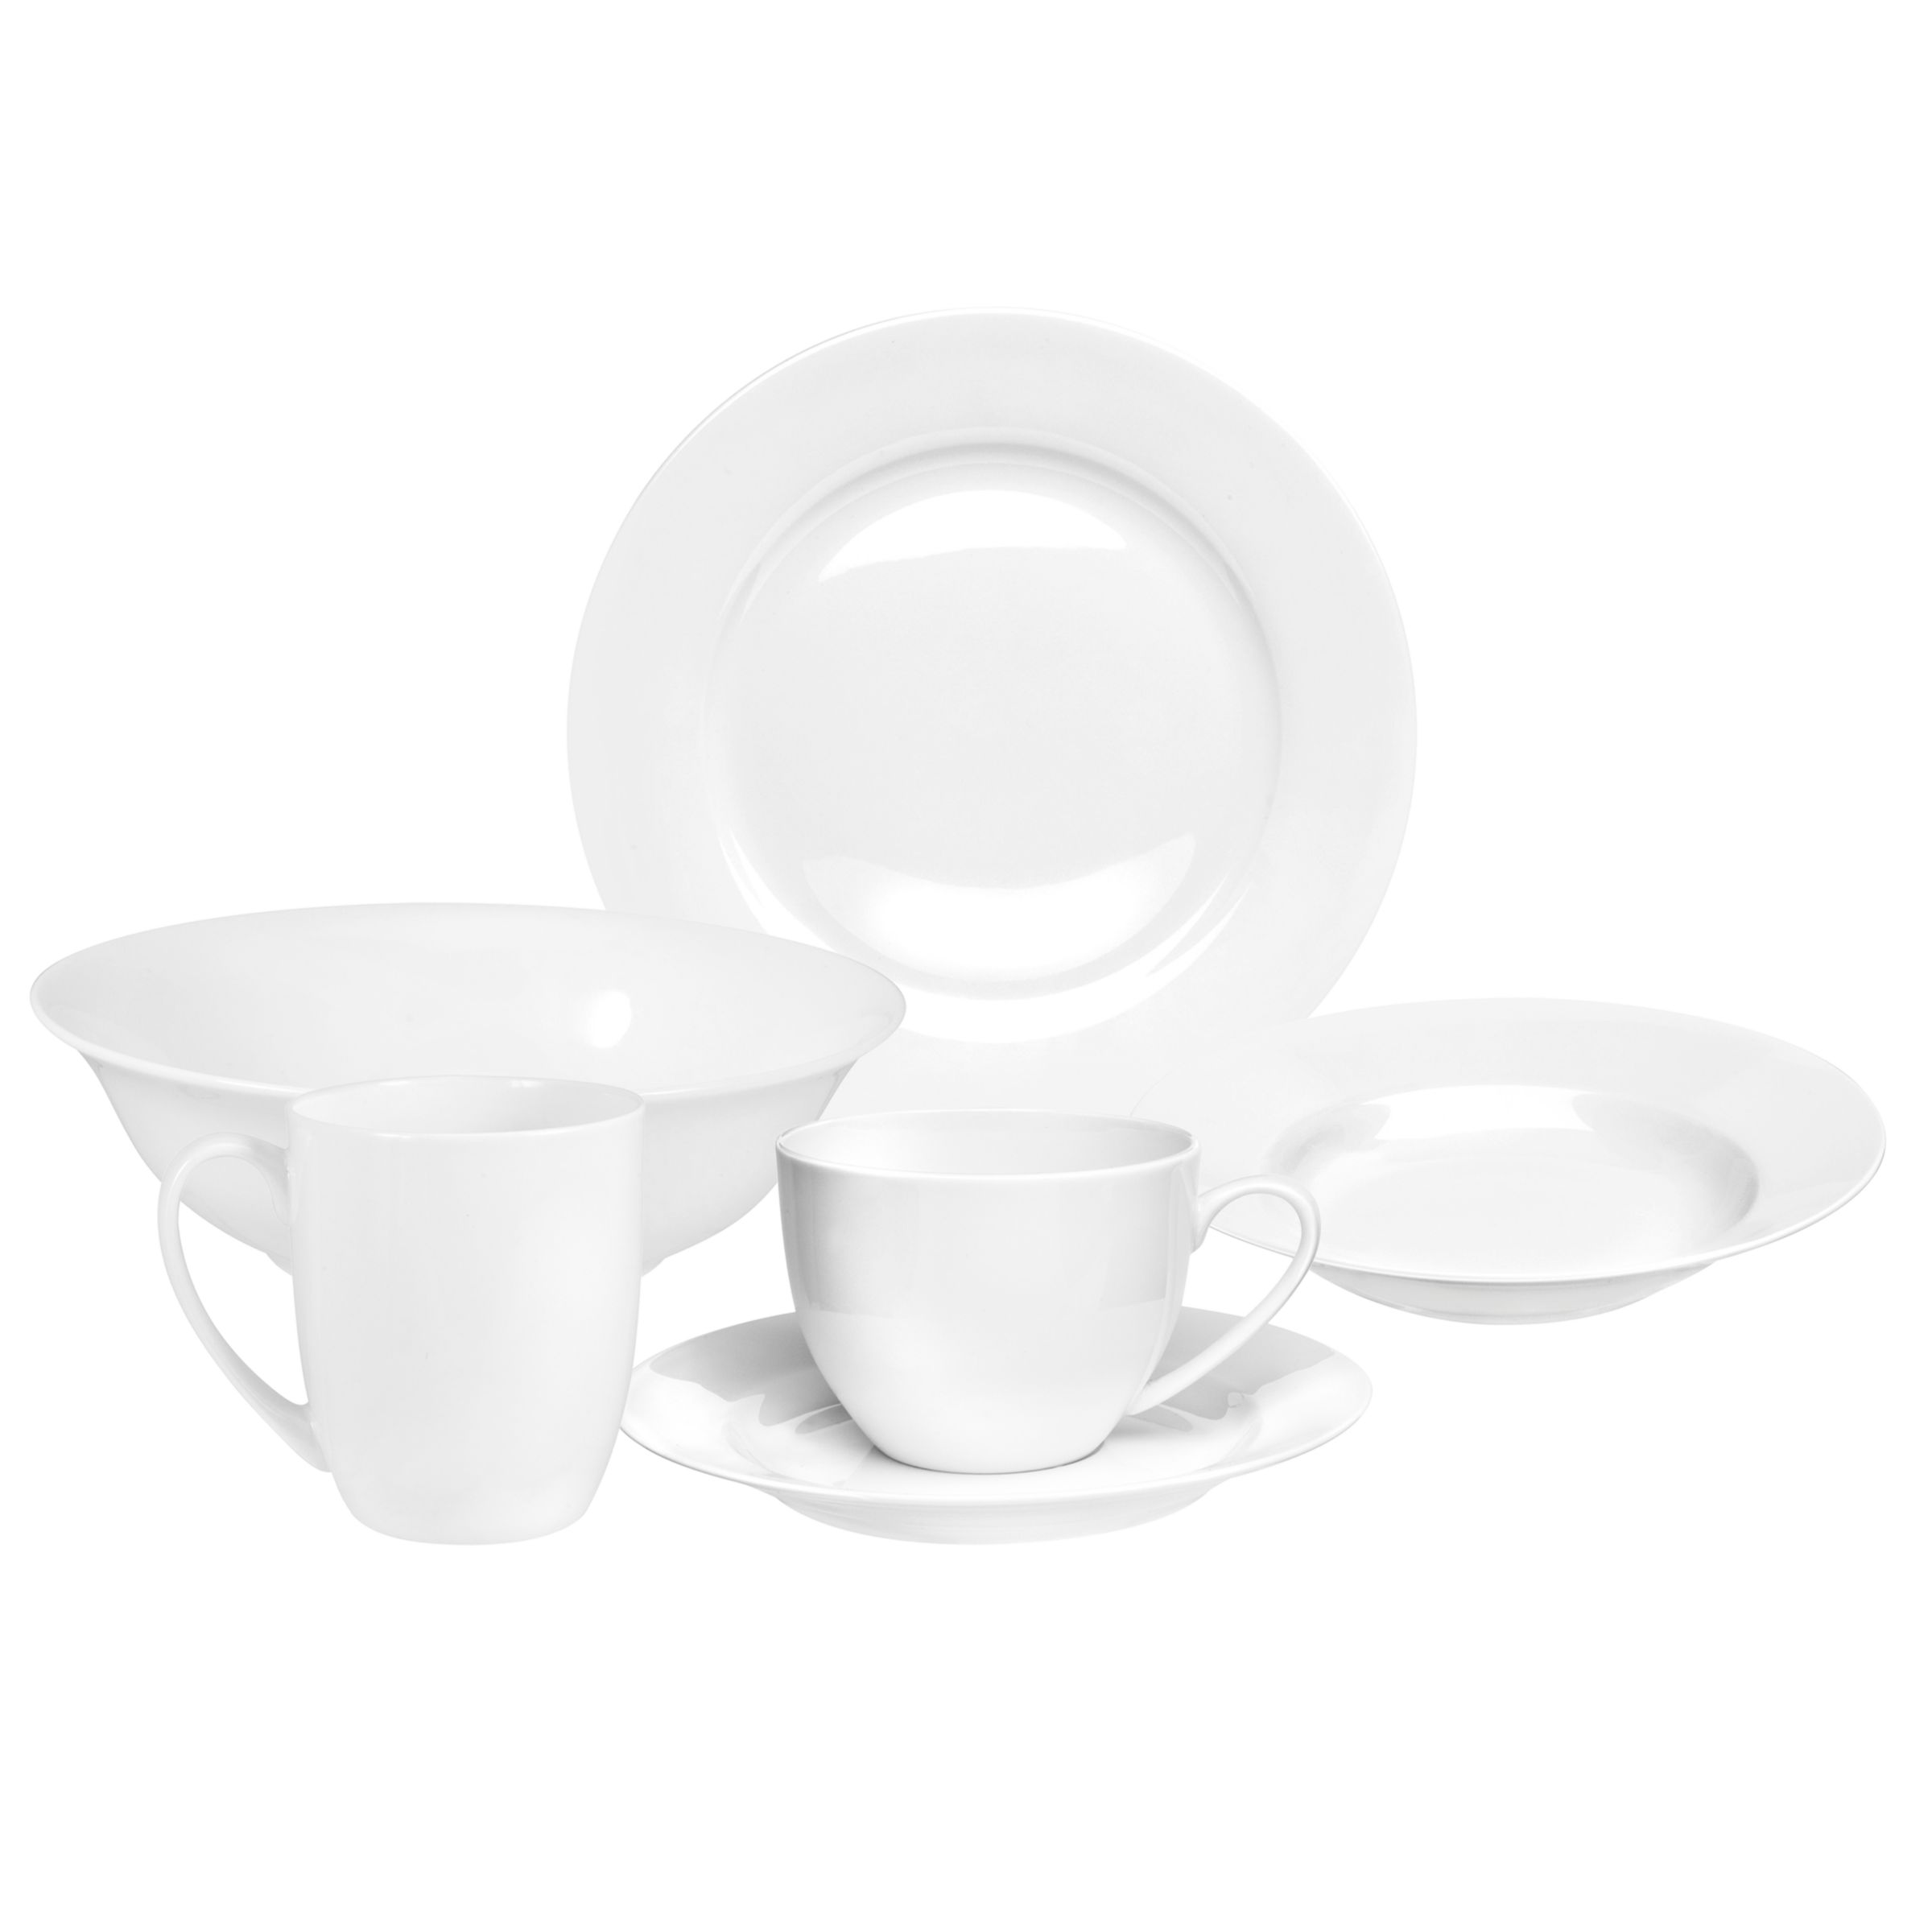 Royal Worcester Serendipity Bone China Tableware & Royal Worcester Serendipity Bone China Tableware at John Lewis